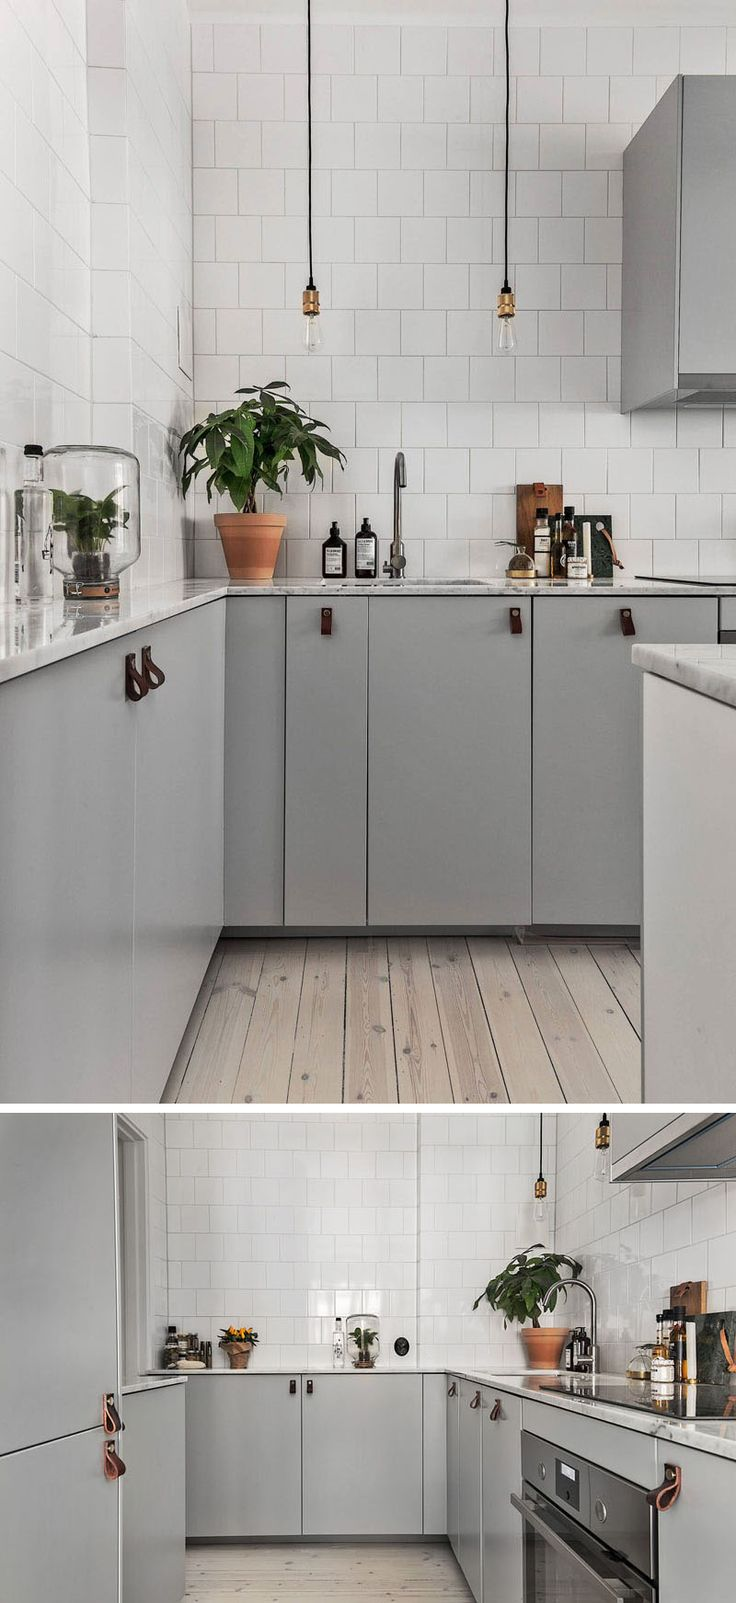 12 Examples Of Sophisticated Gray Kitchen Cabinets // Minimalist gray cabinets have been paired with white tiles and leather pulls in this kitchen.